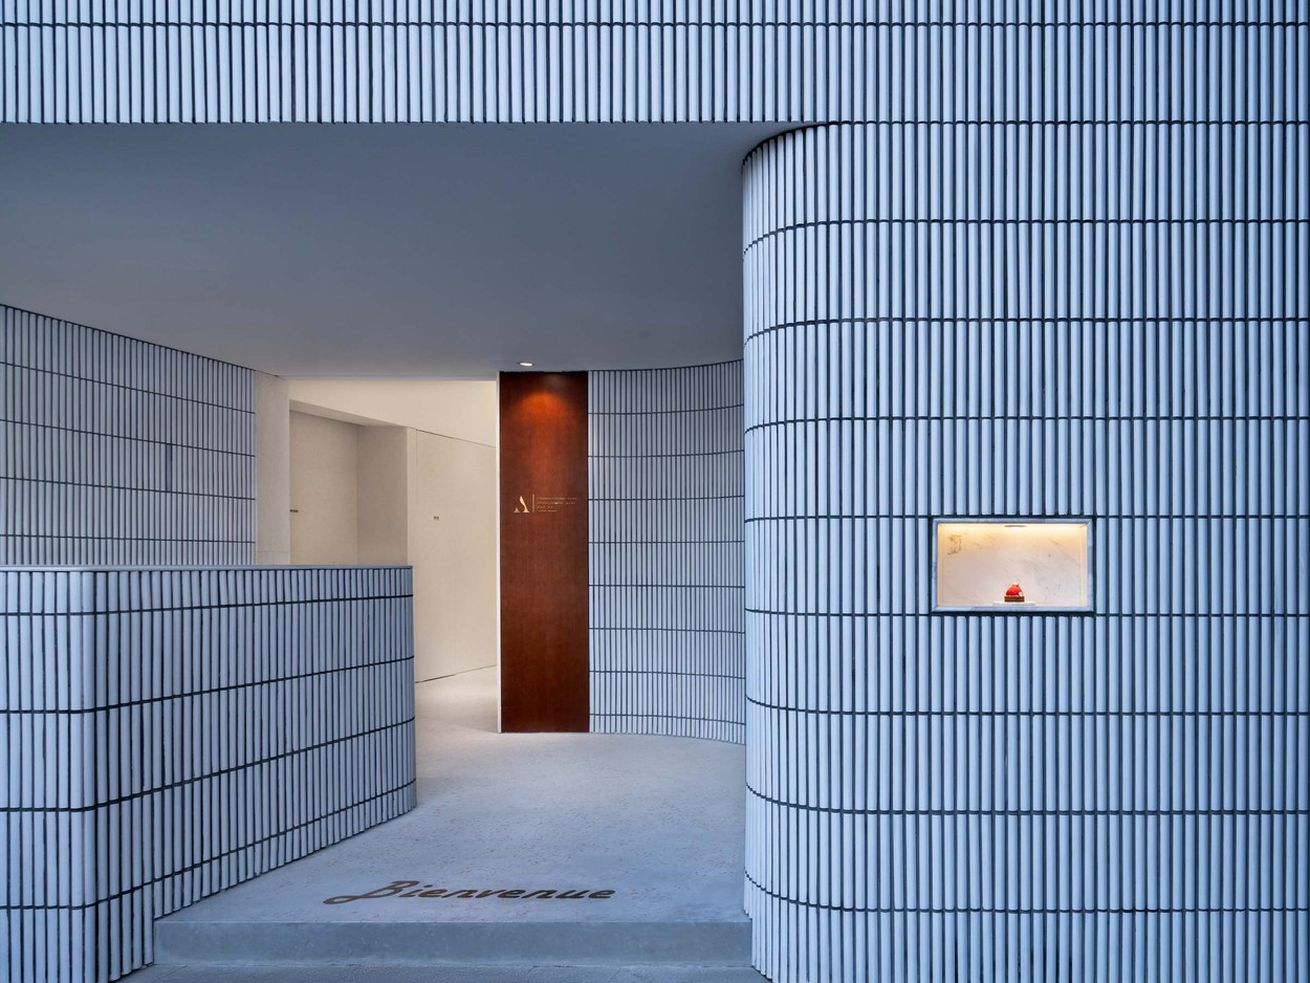 Minimalist pastry shop lures you in with curved tile facade